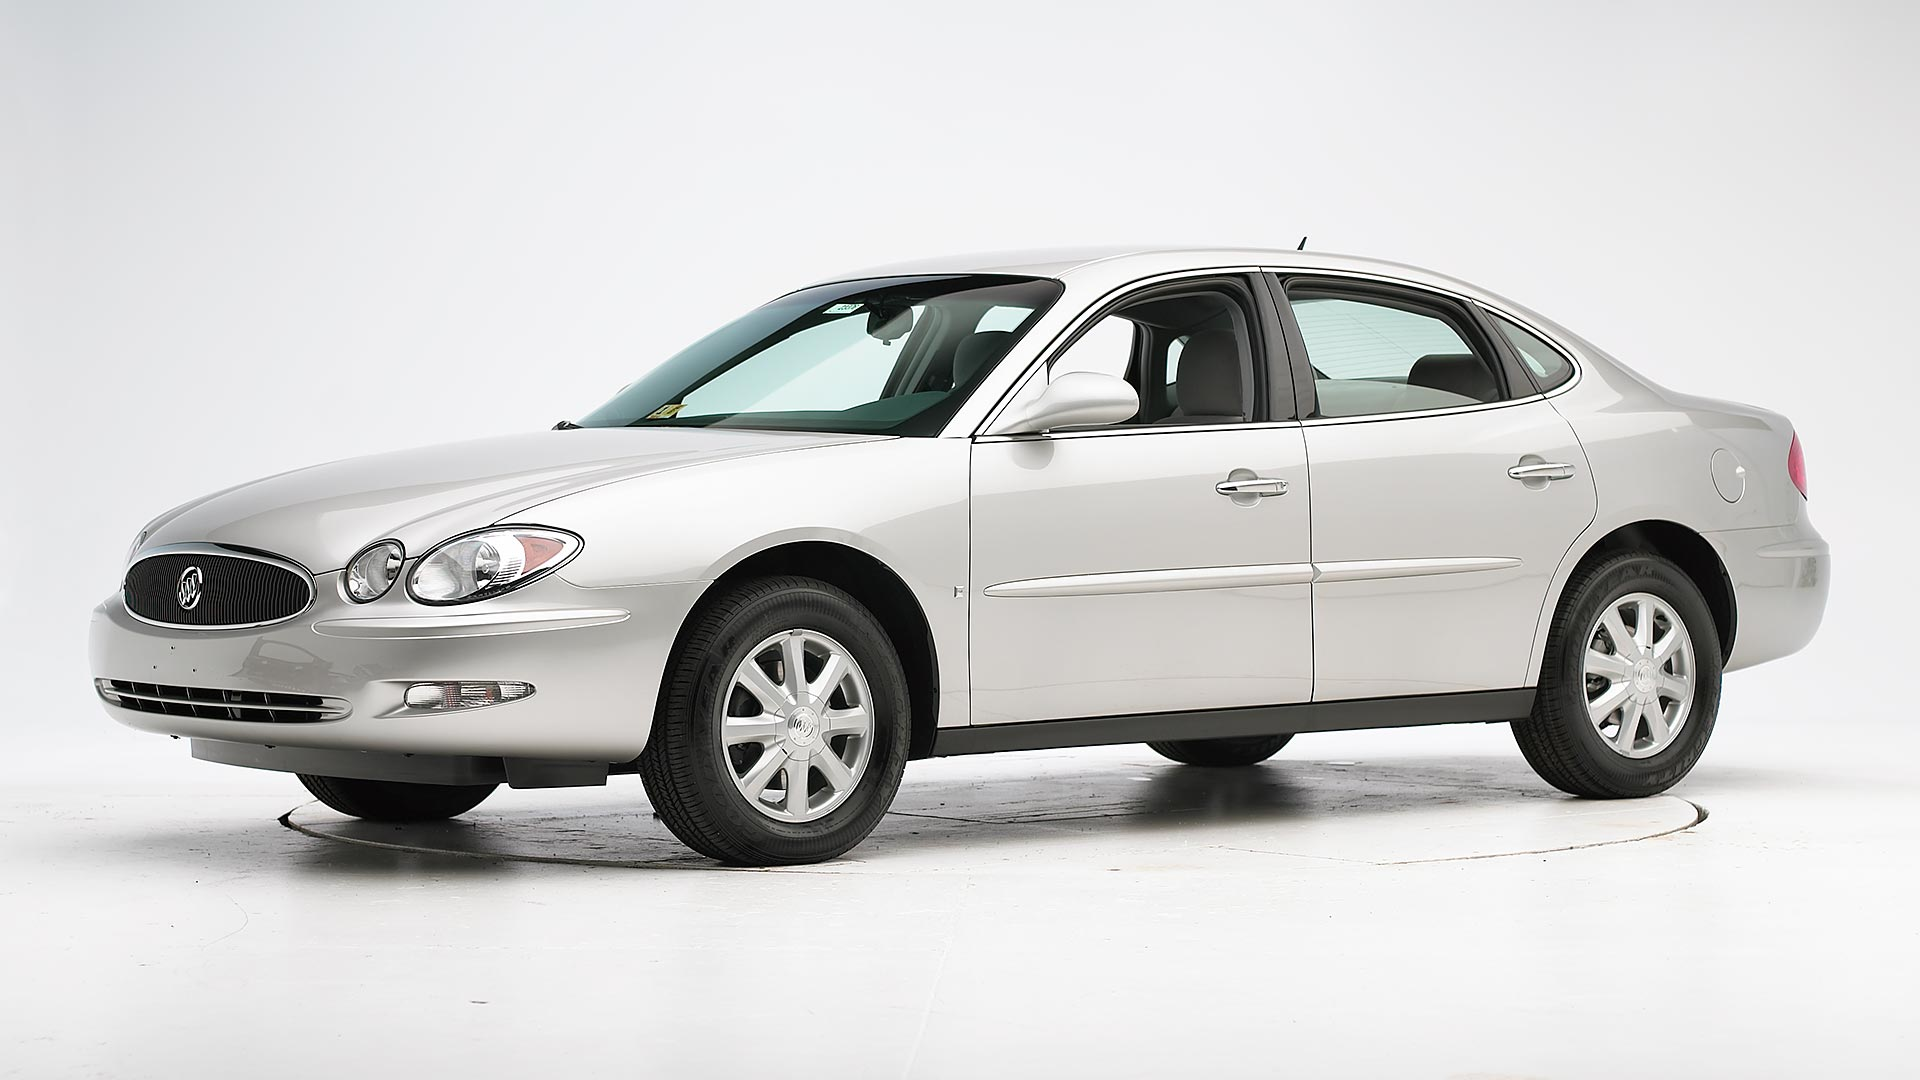 2006 Buick LaCrosse 4-door sedan